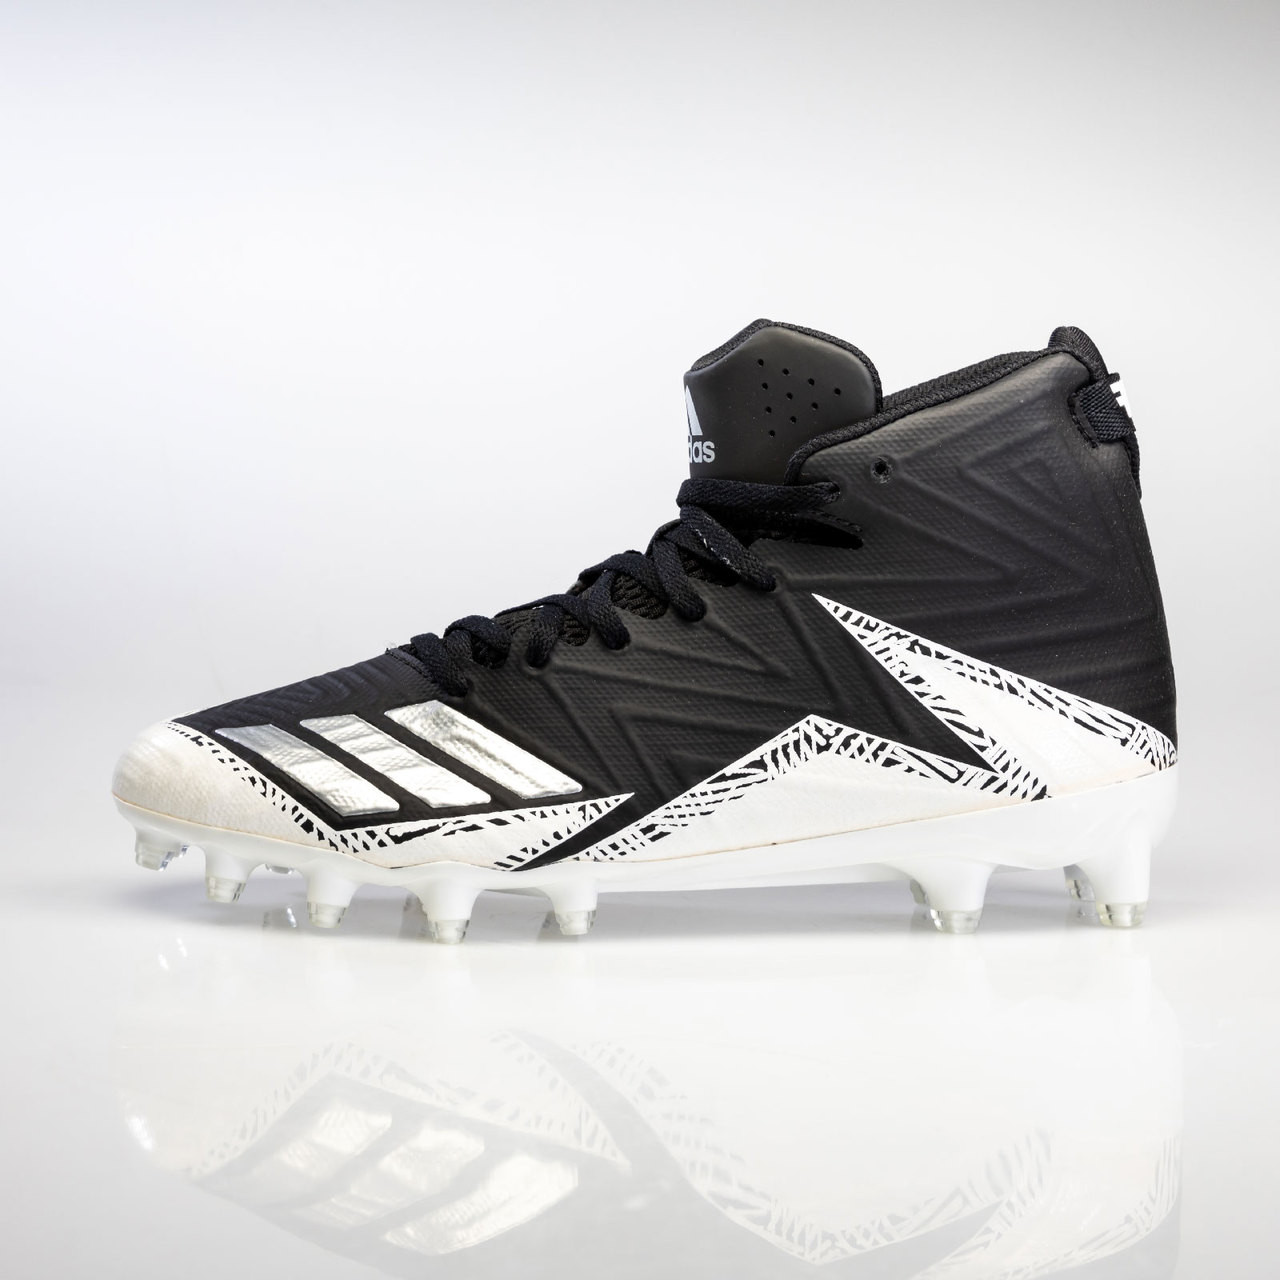 finest selection 6eb27 c24e0 Adidas Freak X Carbon Mid Senior Football Cleats BW0867